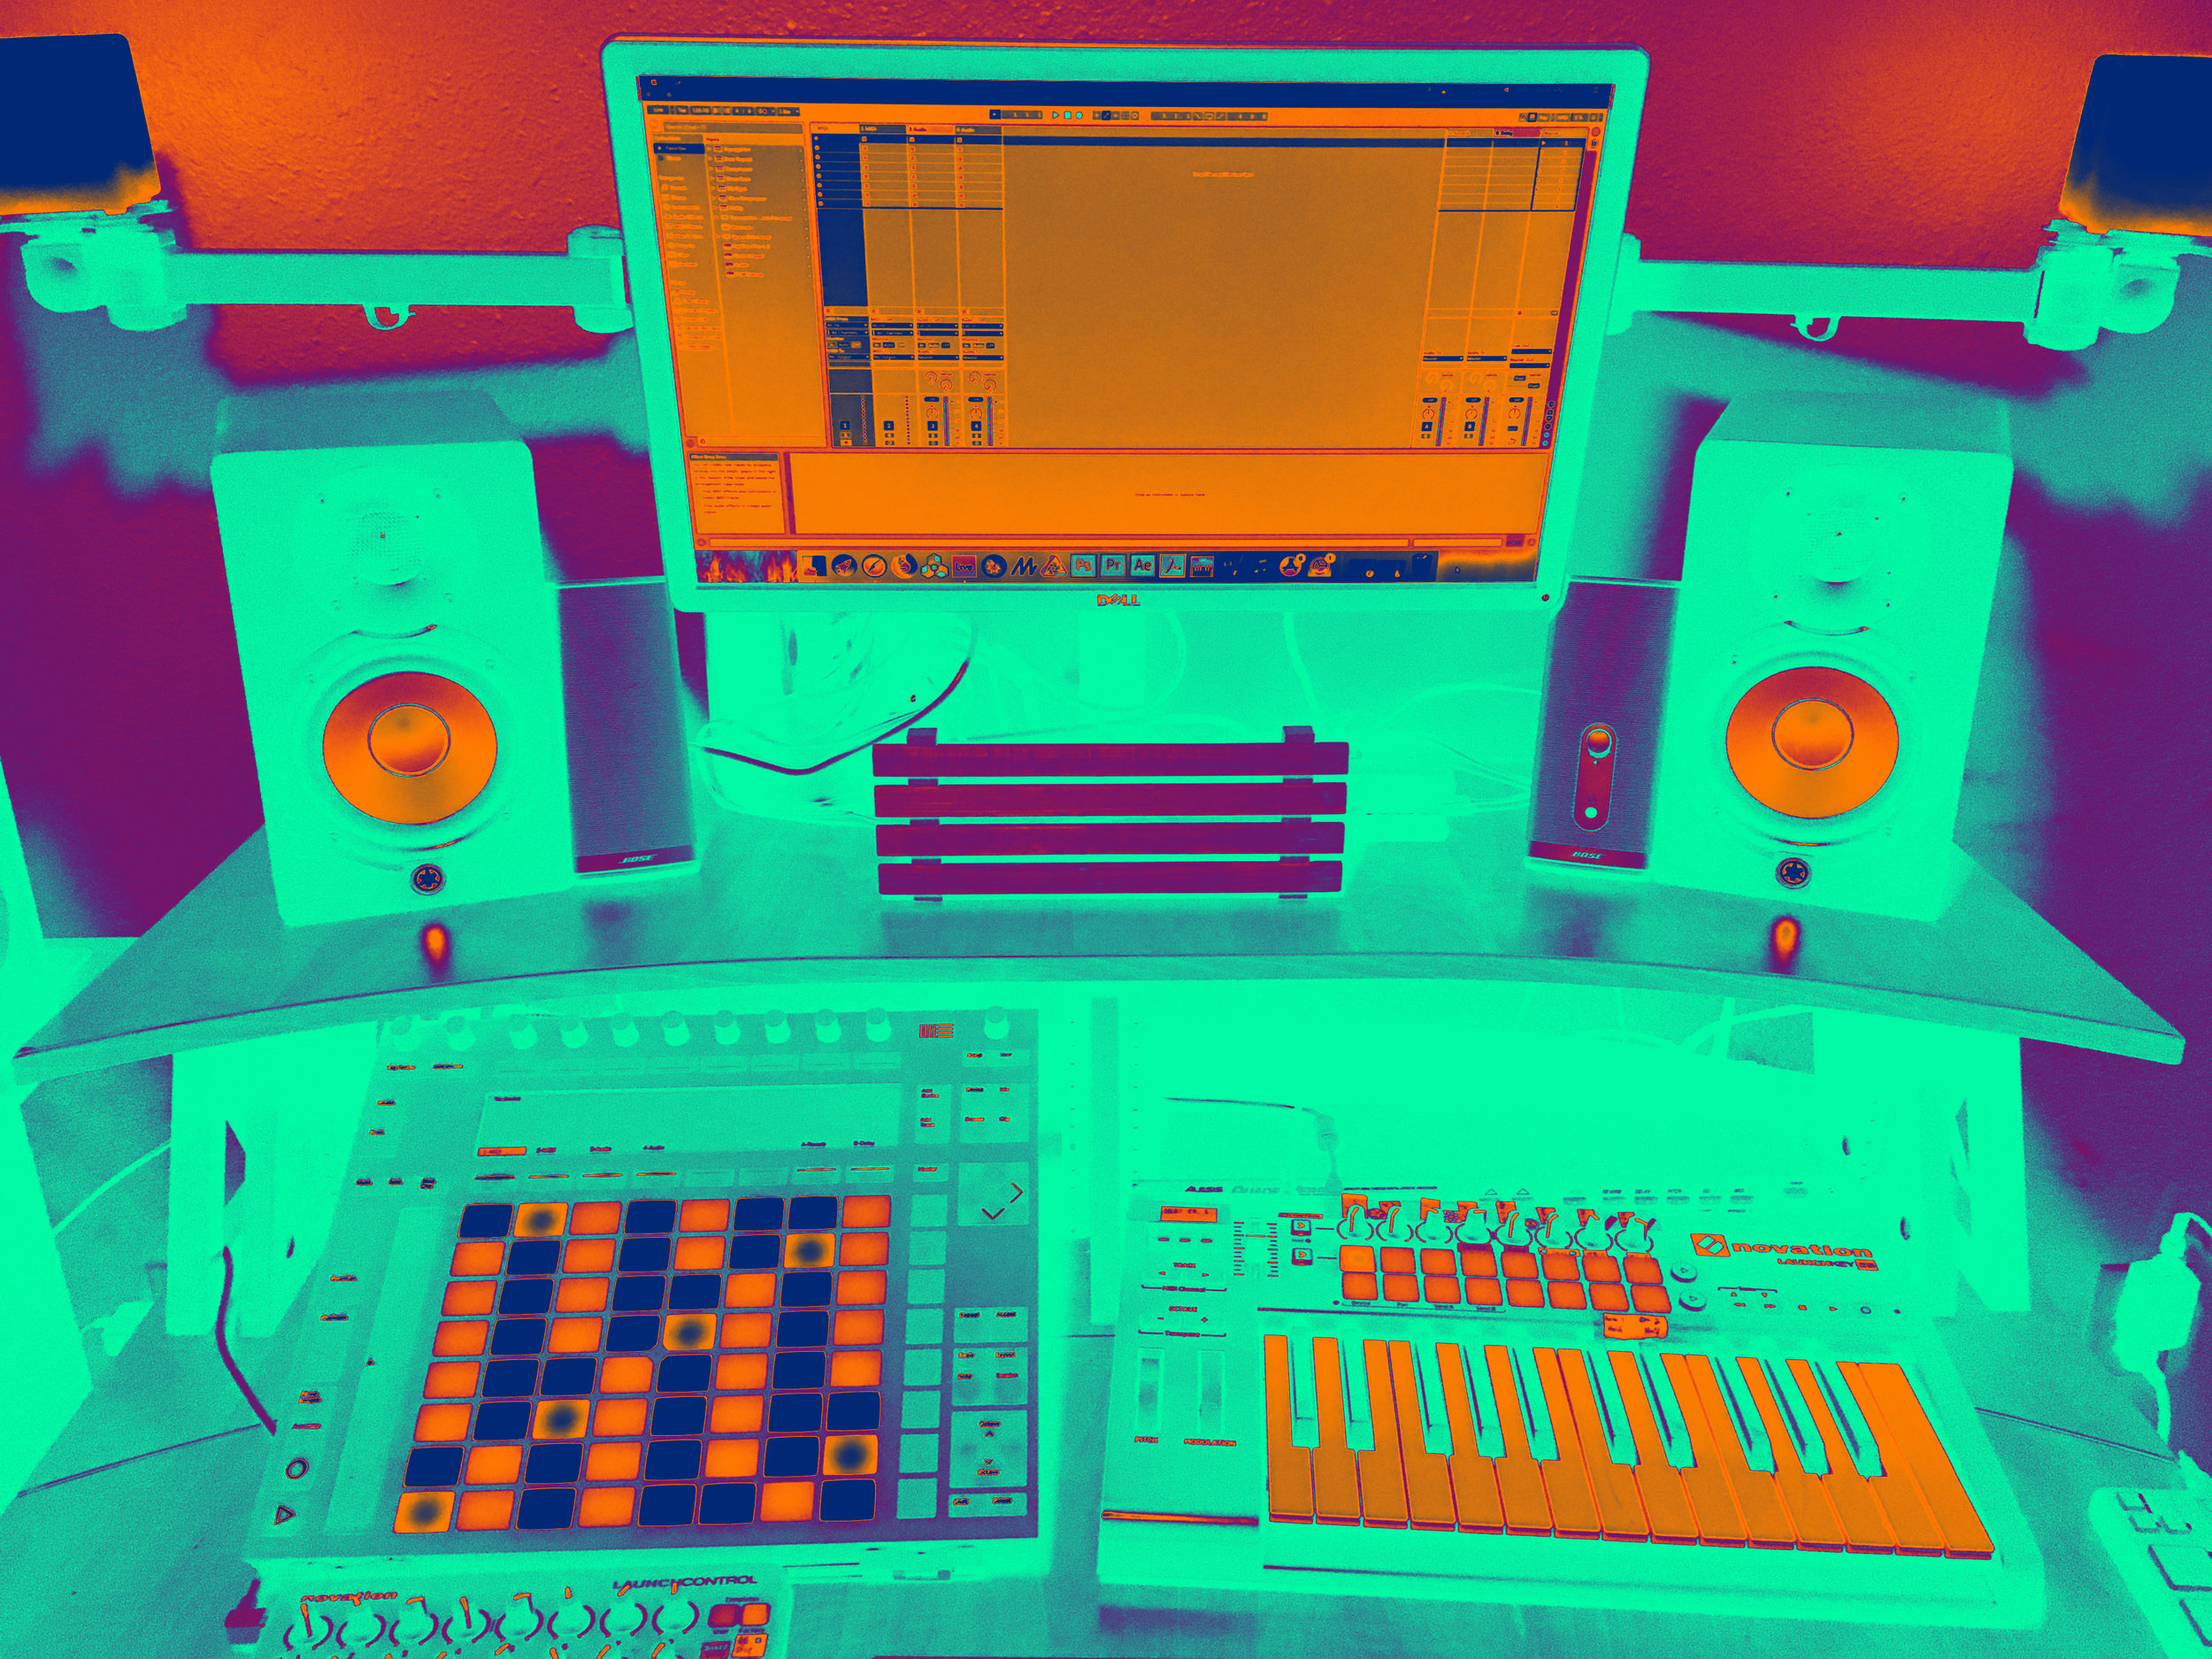 Sound services: Audio Editing, Leveling, Arranging, Recording, Mixing  Free consultation: sean@happyhmm.com  Per song mix: $50, Per song master: $50   General production: $40 /hr